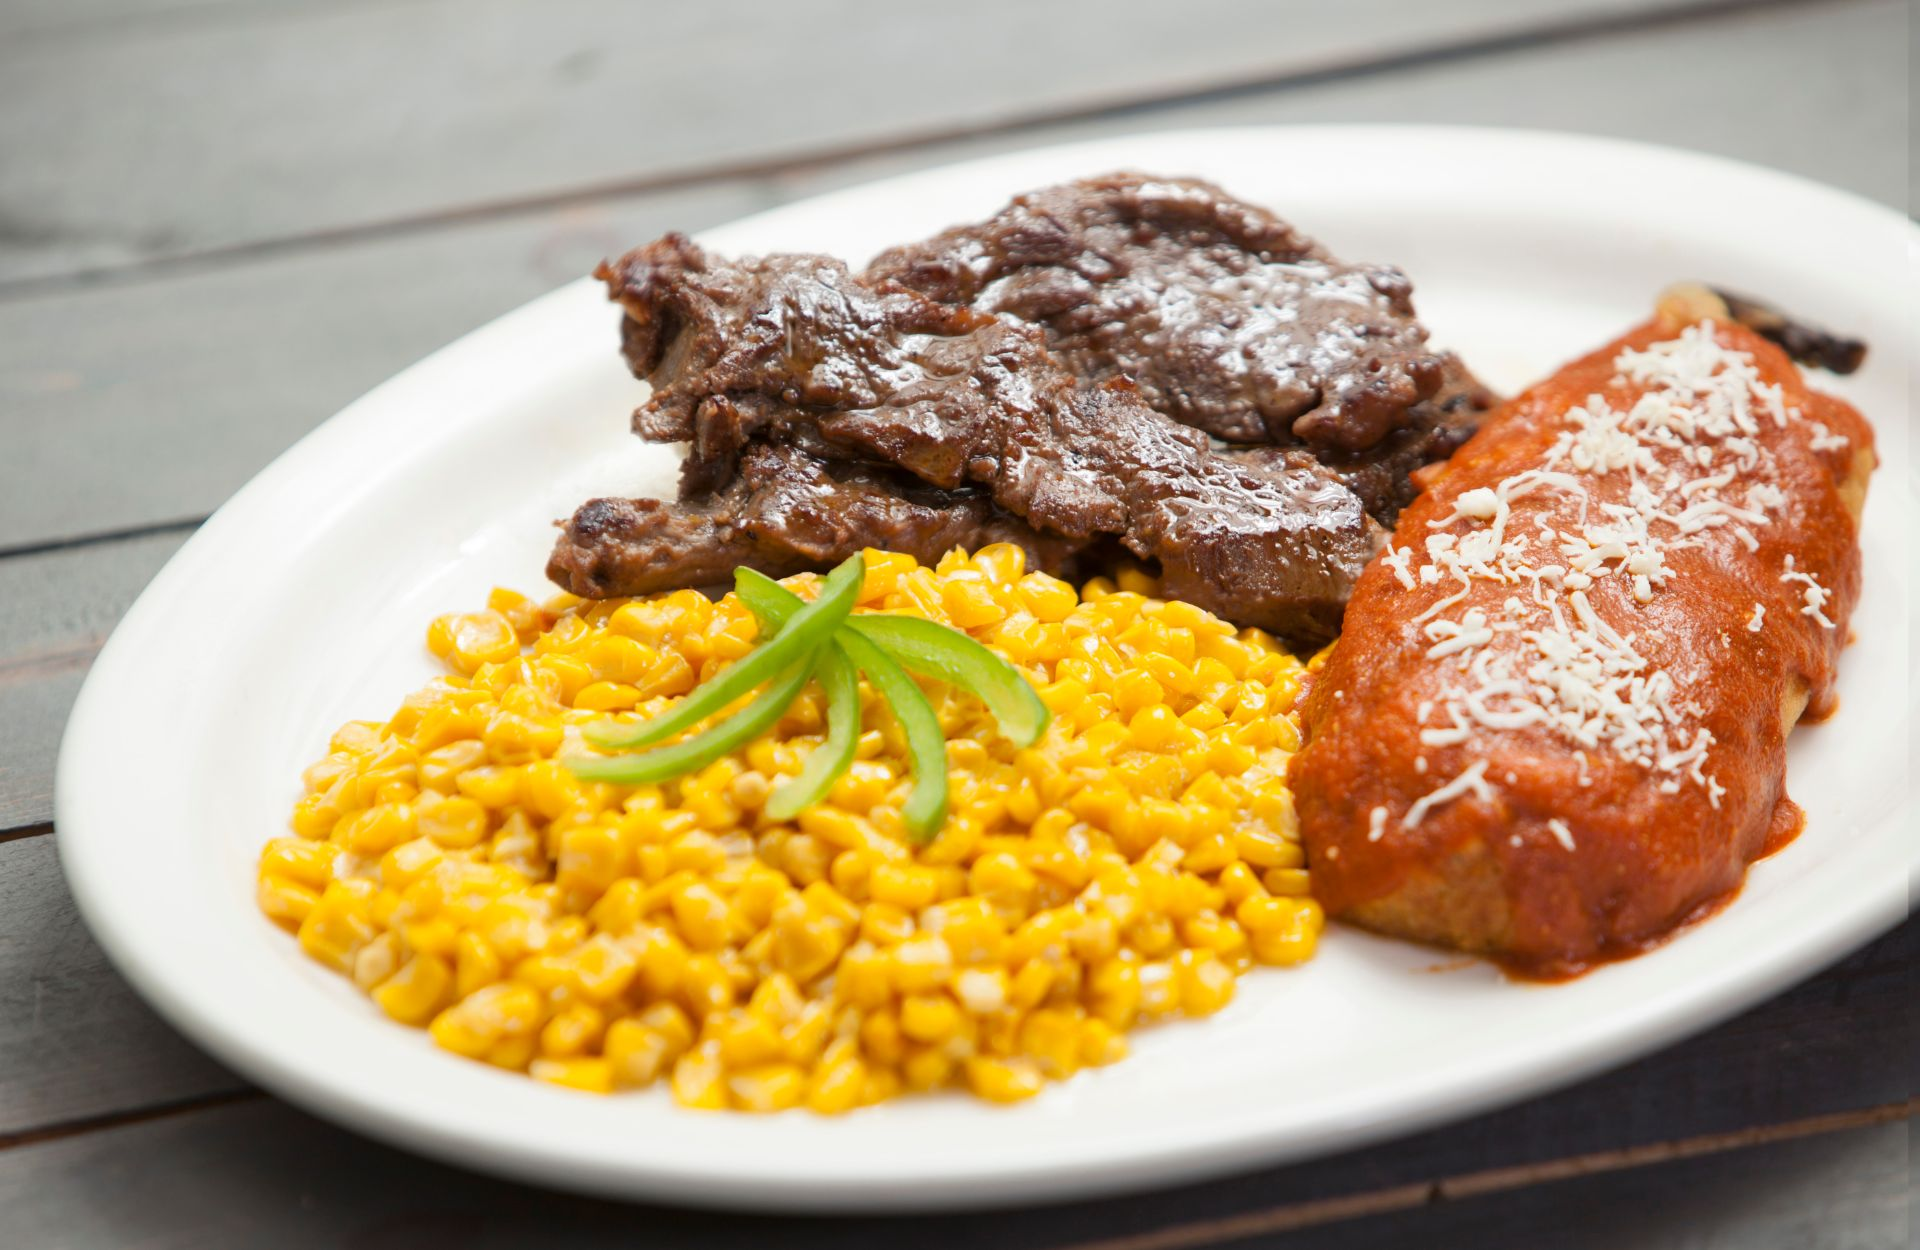 Skirt steak and enchilada with a side of corn